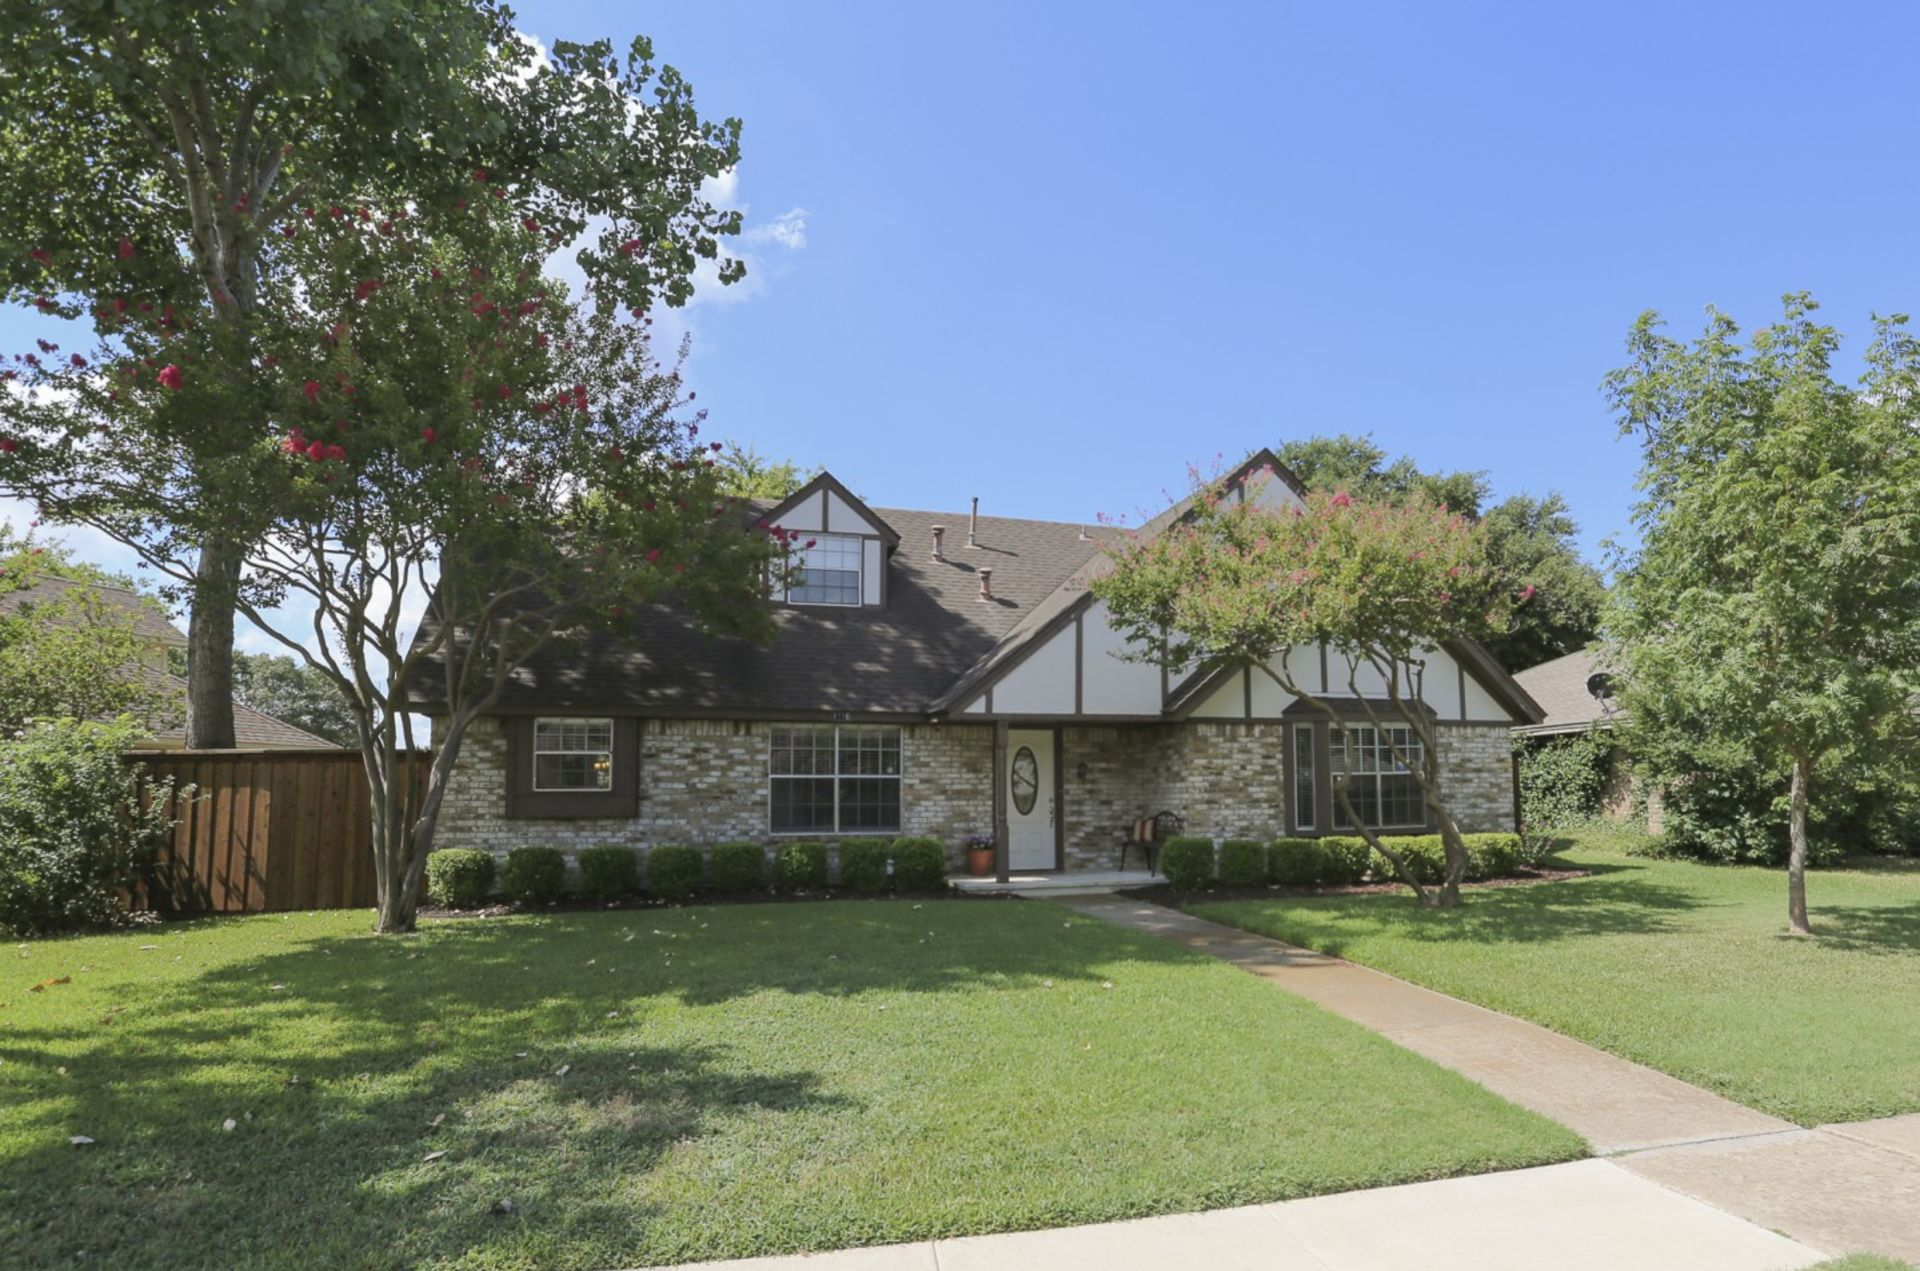 STUNNING HOME FOR SALE IN RICHARDSON